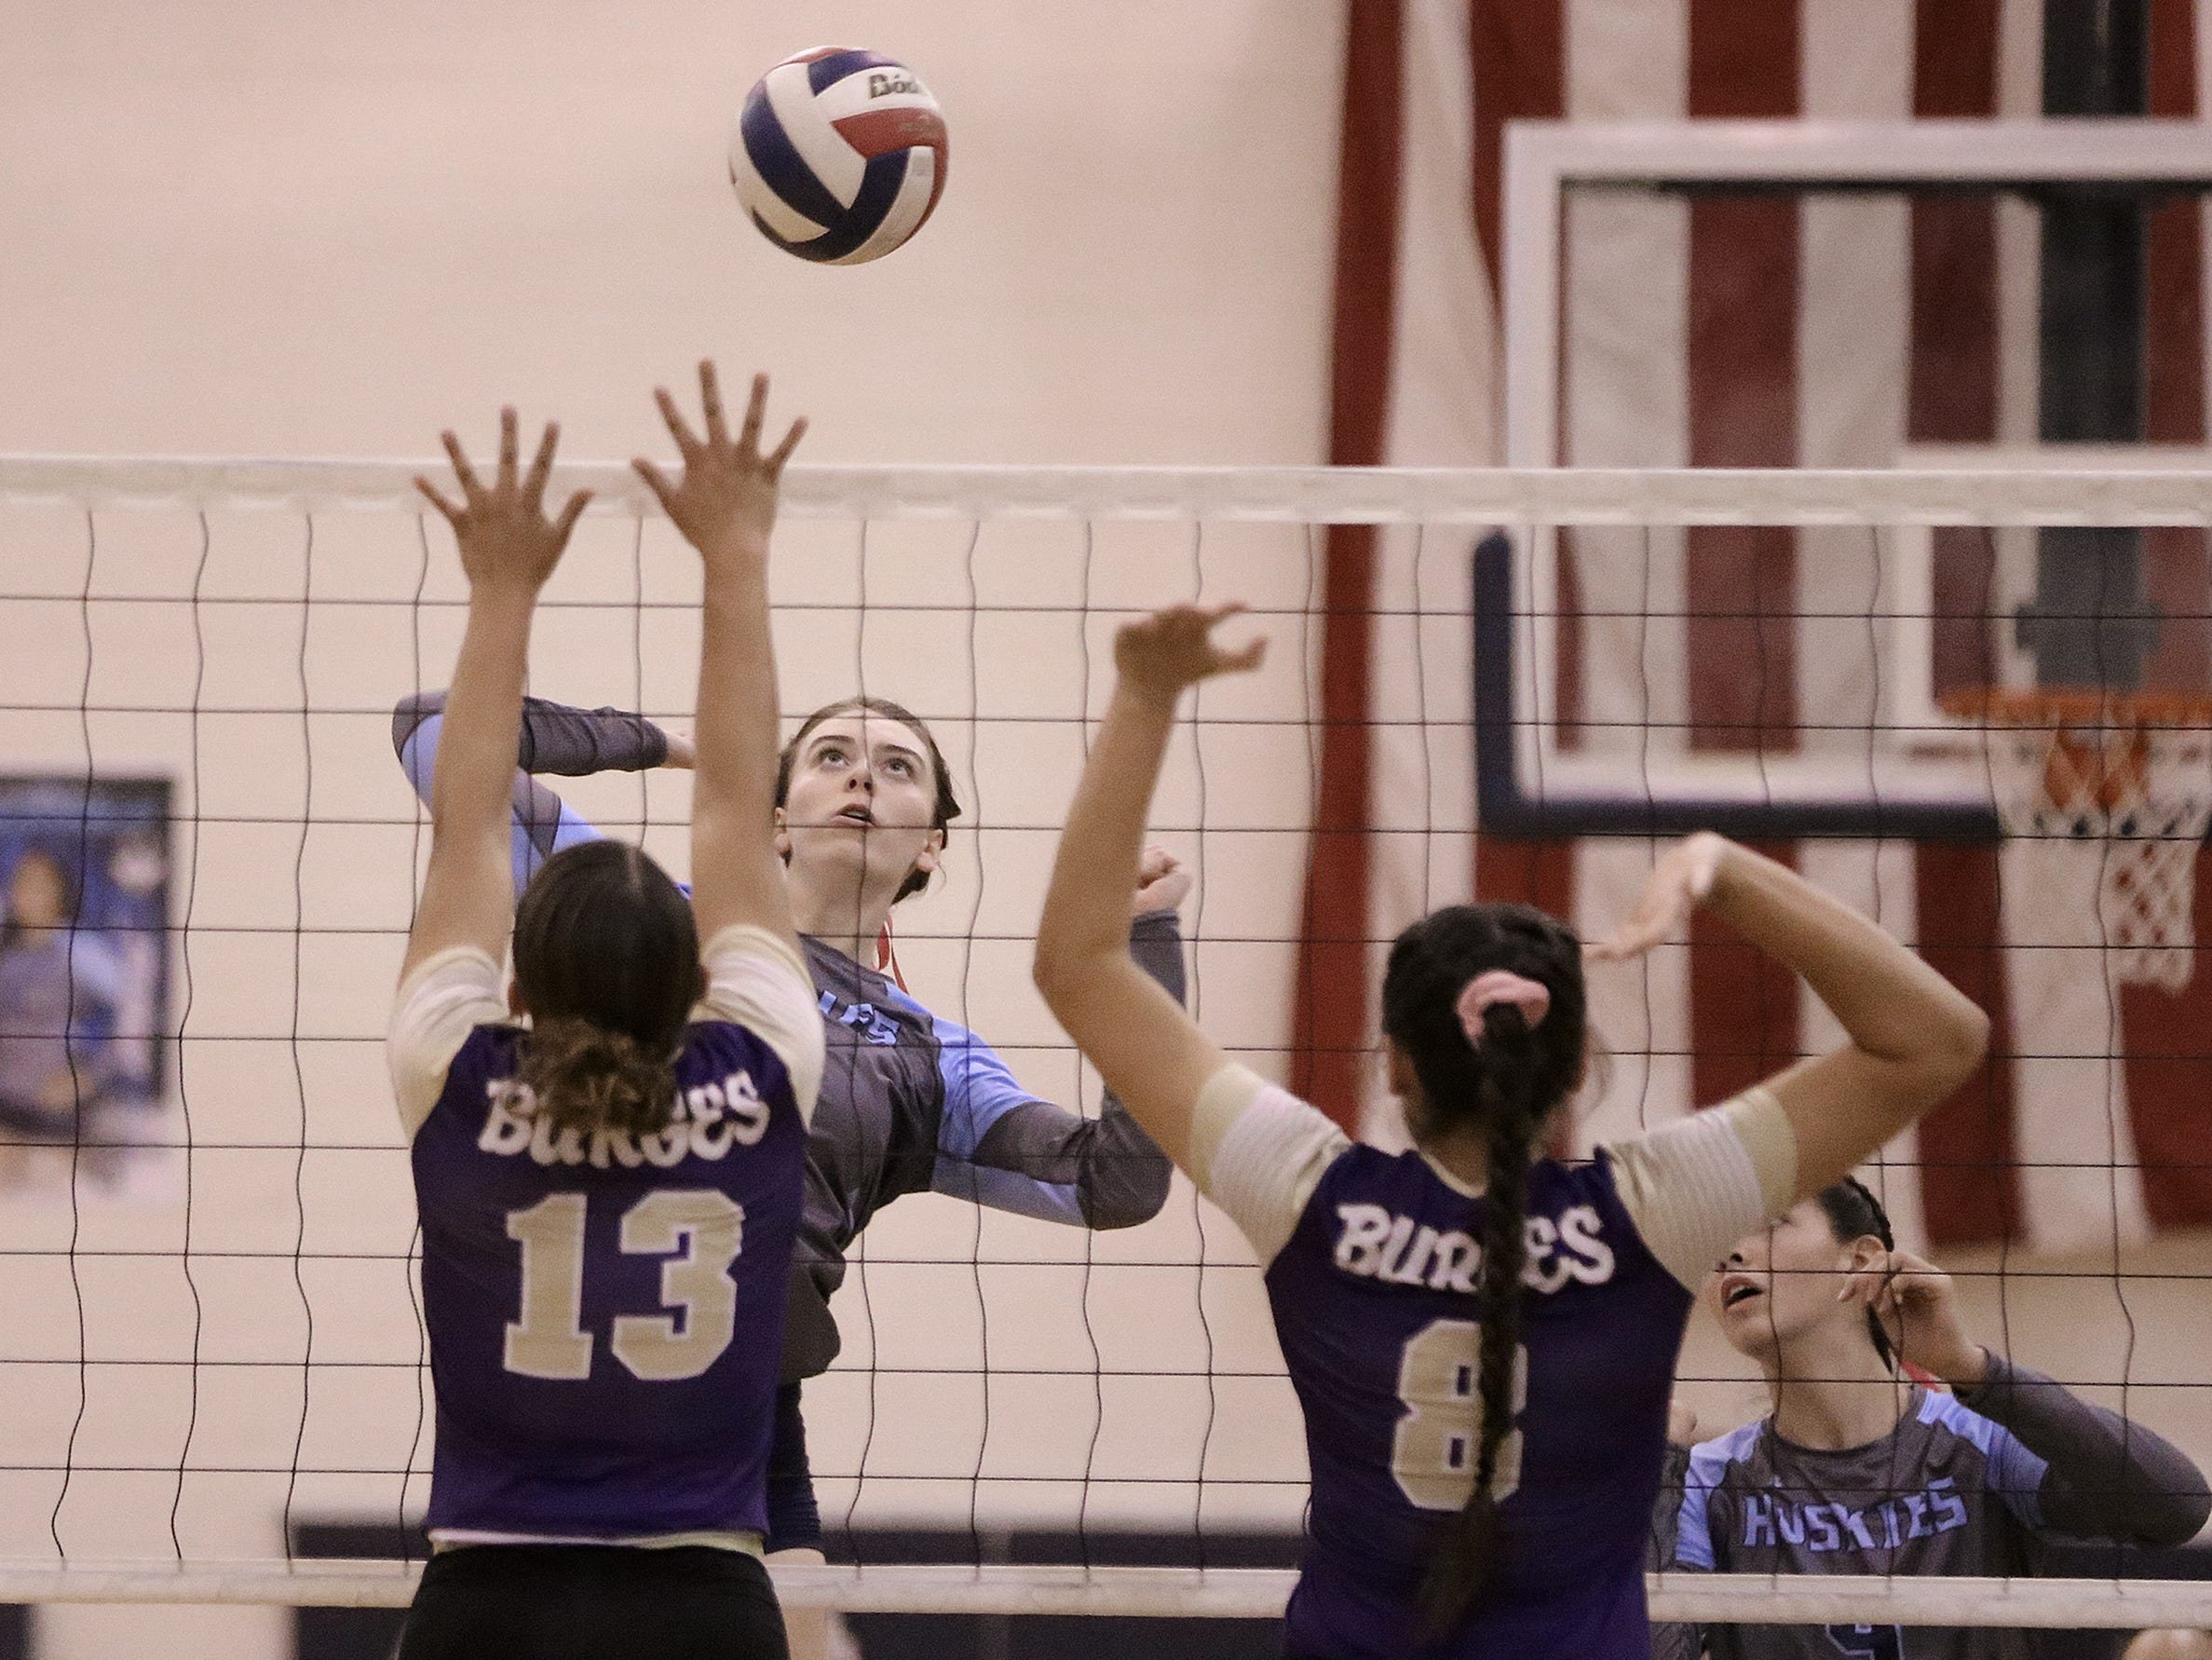 Chapin's Sydney Burnley hits into blockers Meghan Cereceres and Deandra Allen of Burges.